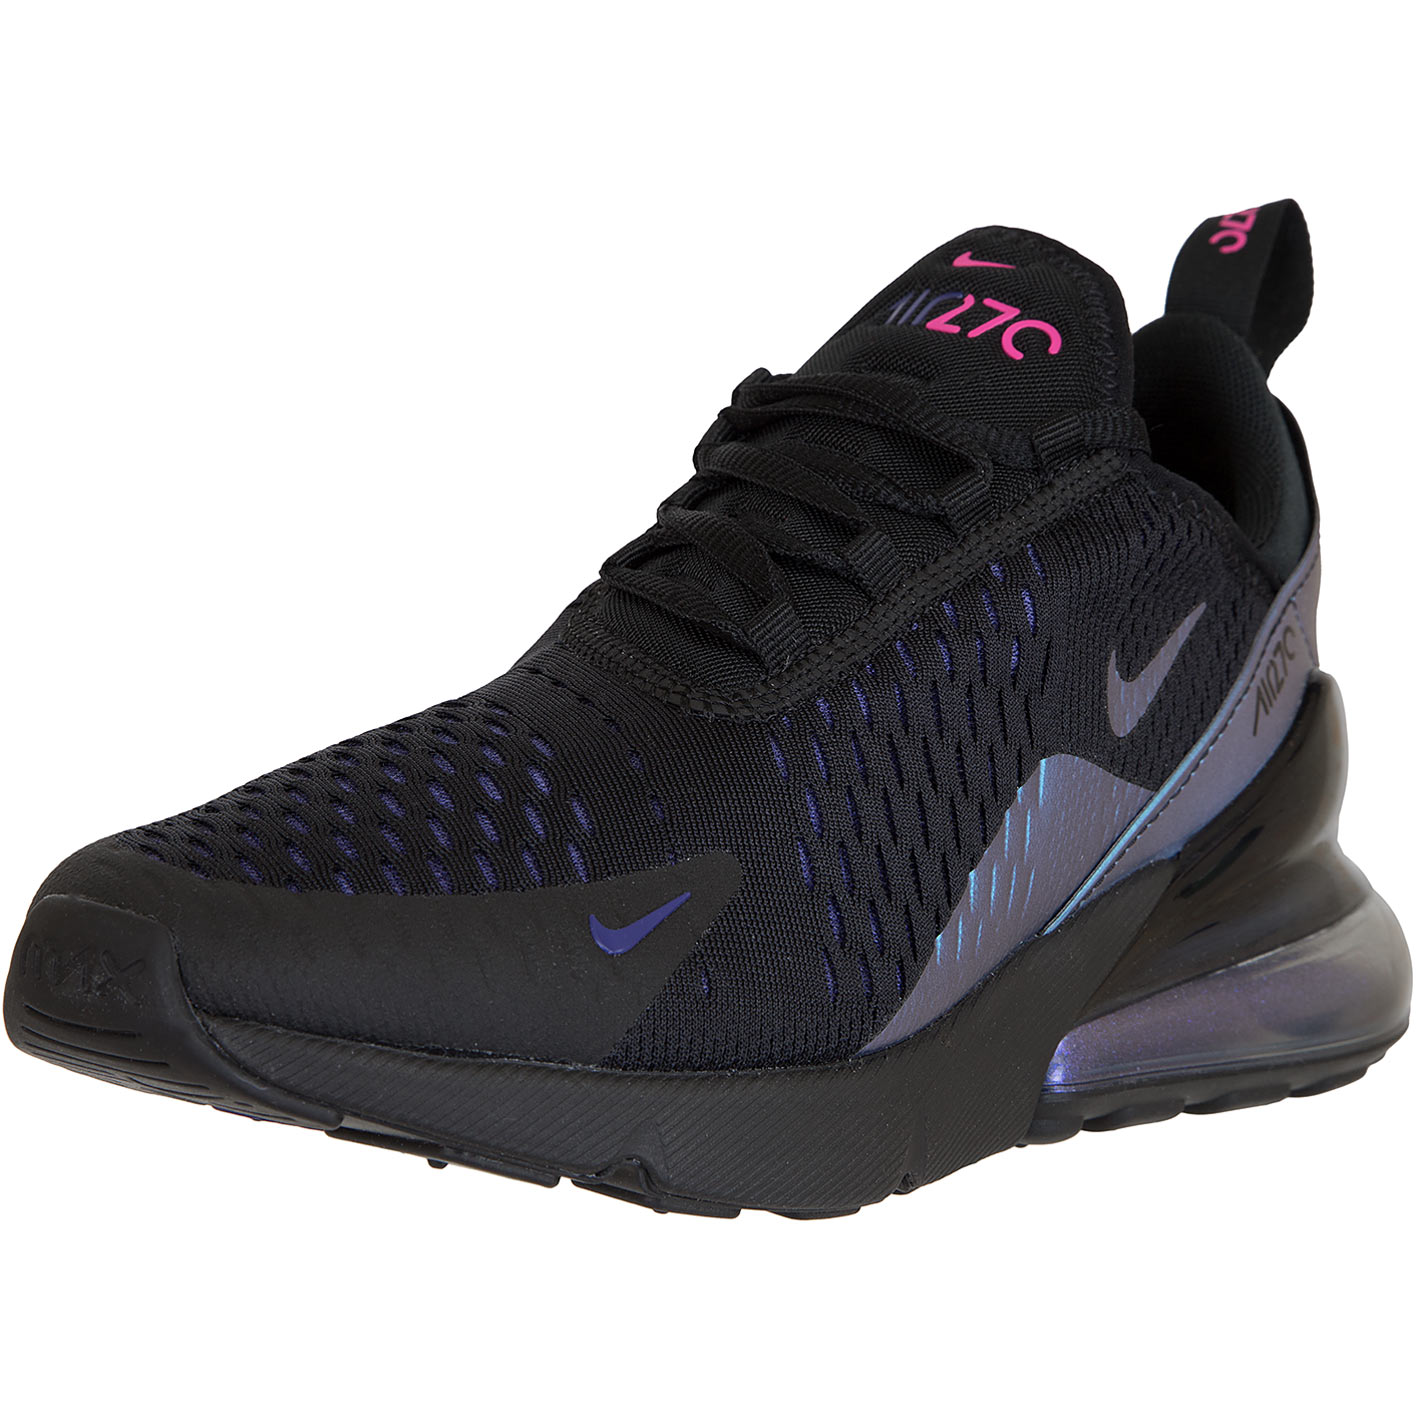 buy cheap online shop best sneakers Nike Damen Sneaker Air Max 270 schwarz/lila/türkis